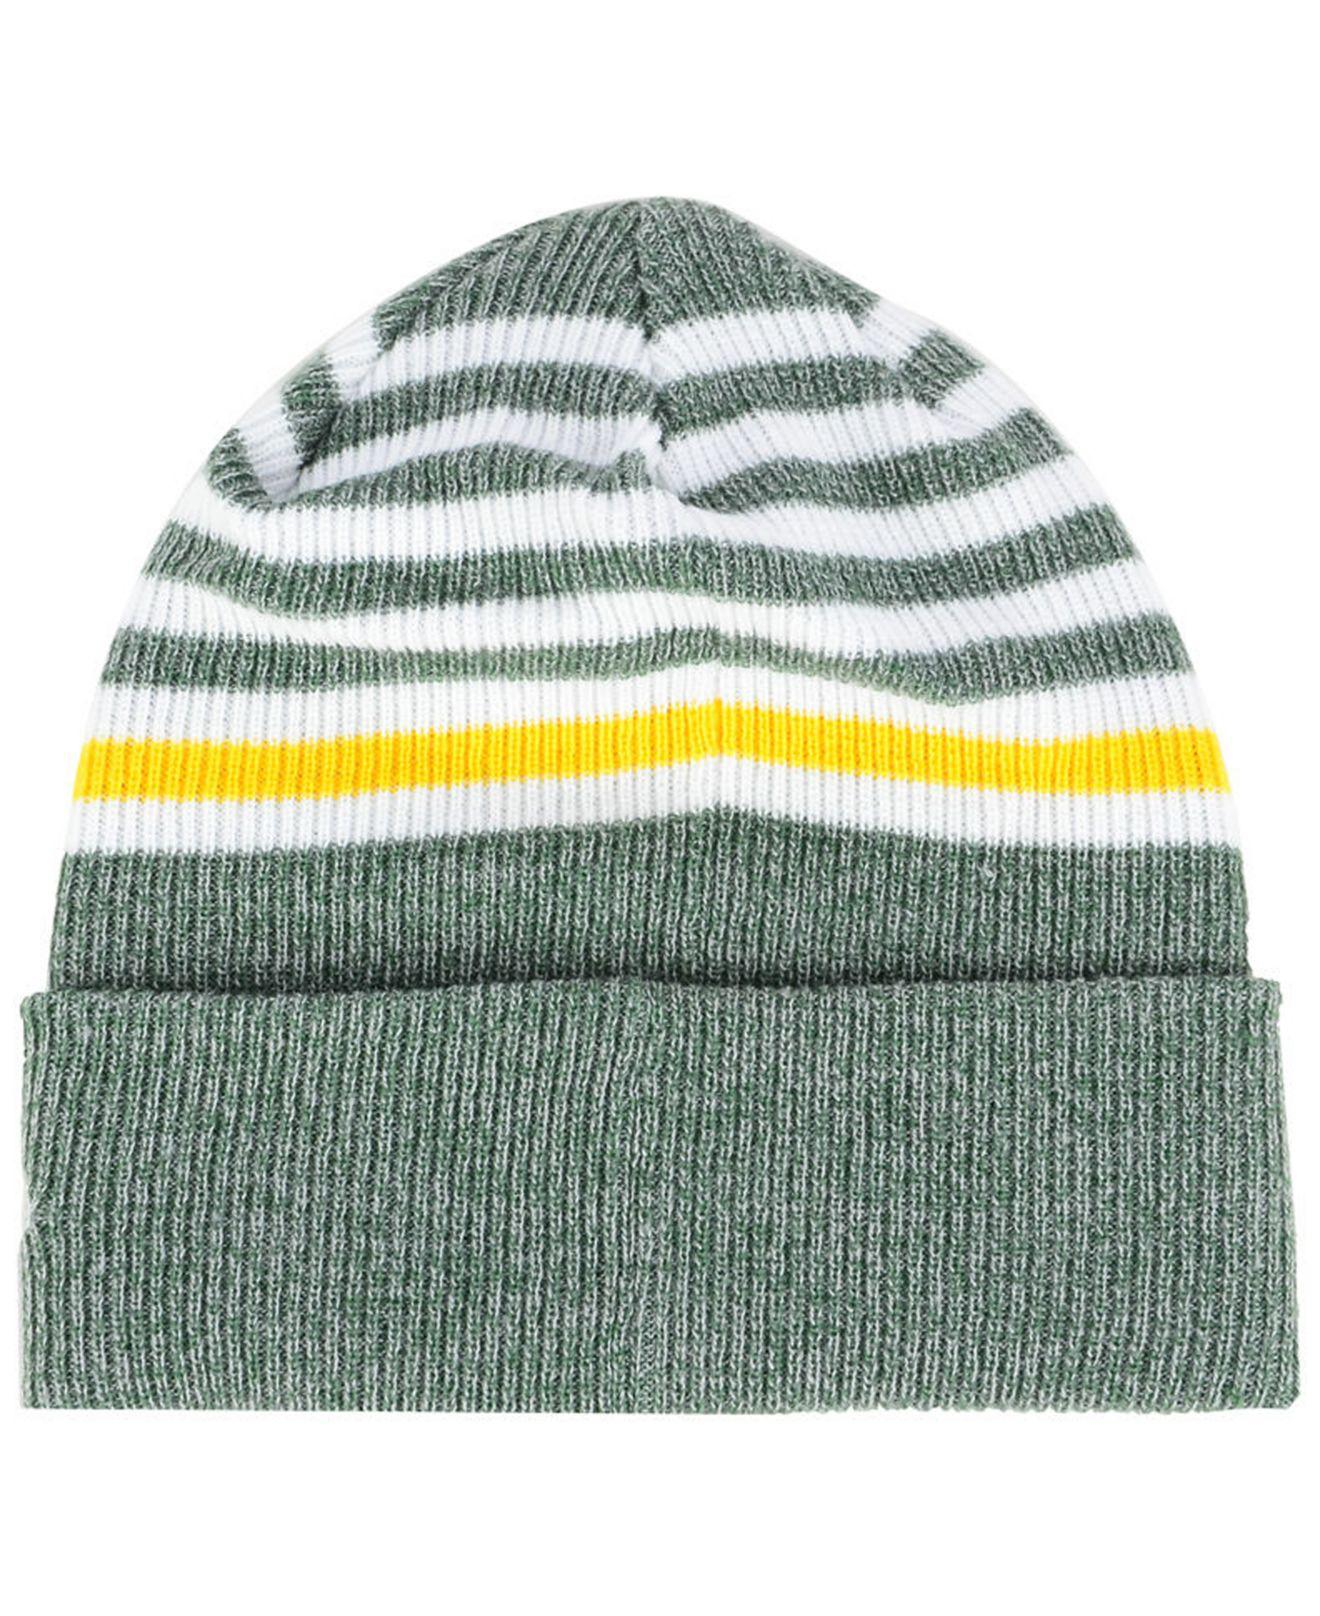 8d3574470 Lyst - KTZ Green Bay Packers Striped2 Cuff Knit Hat in Green for Men